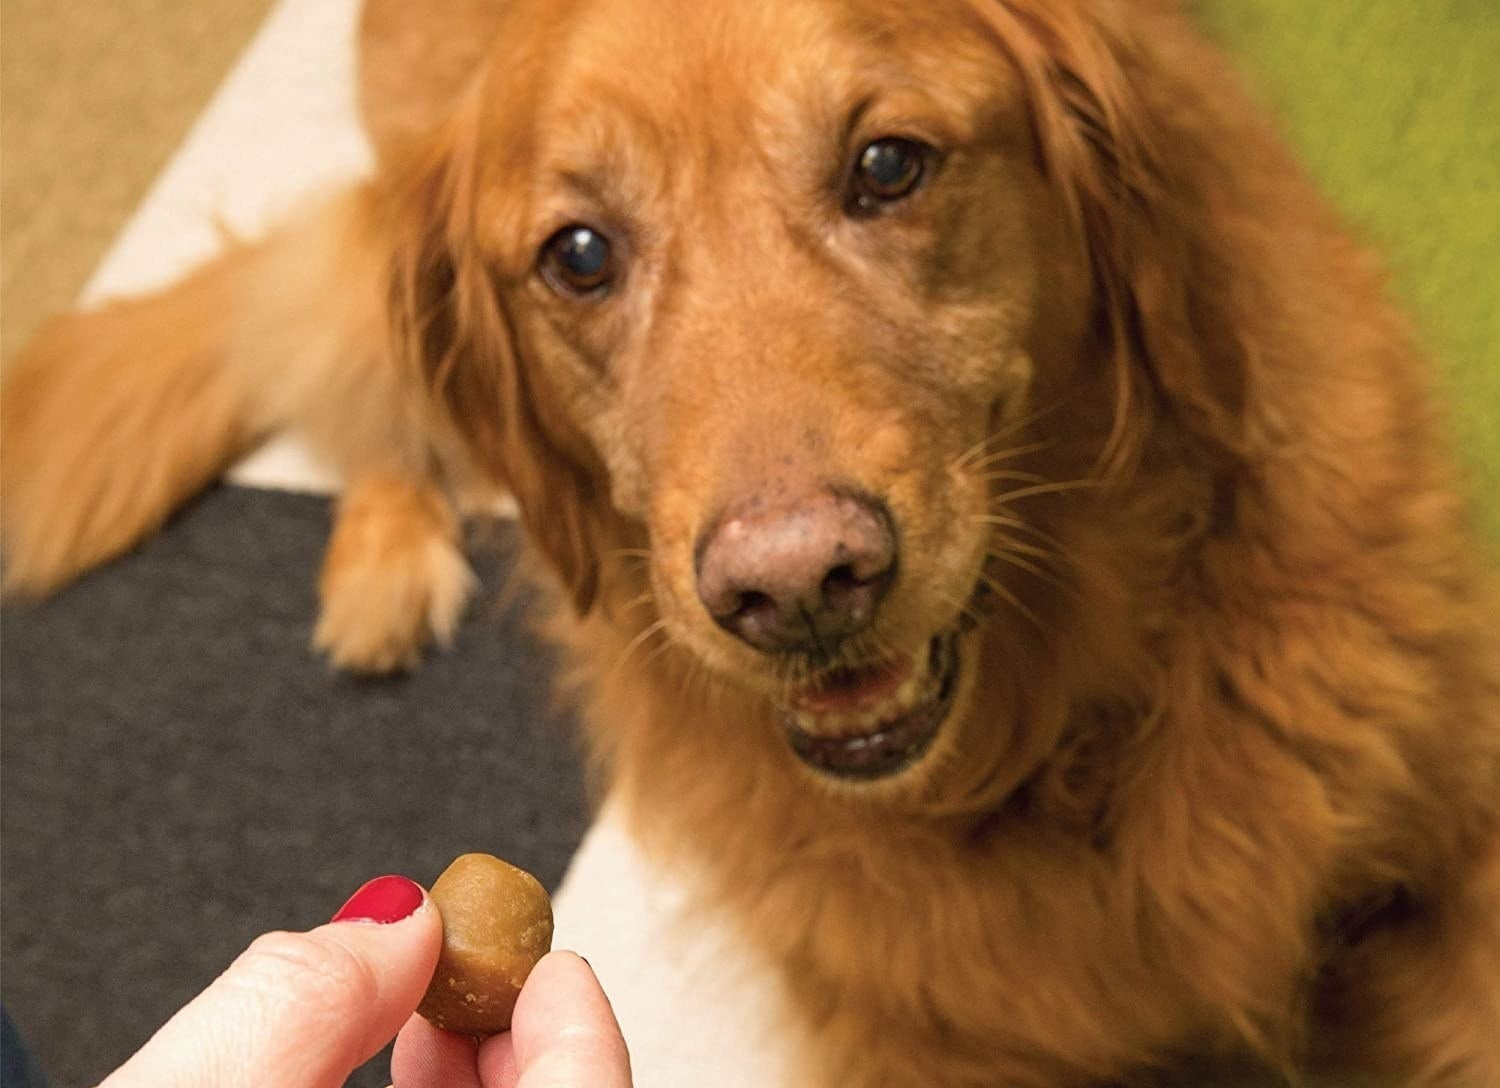 dog looking at a person holding up a greenies pill pocket